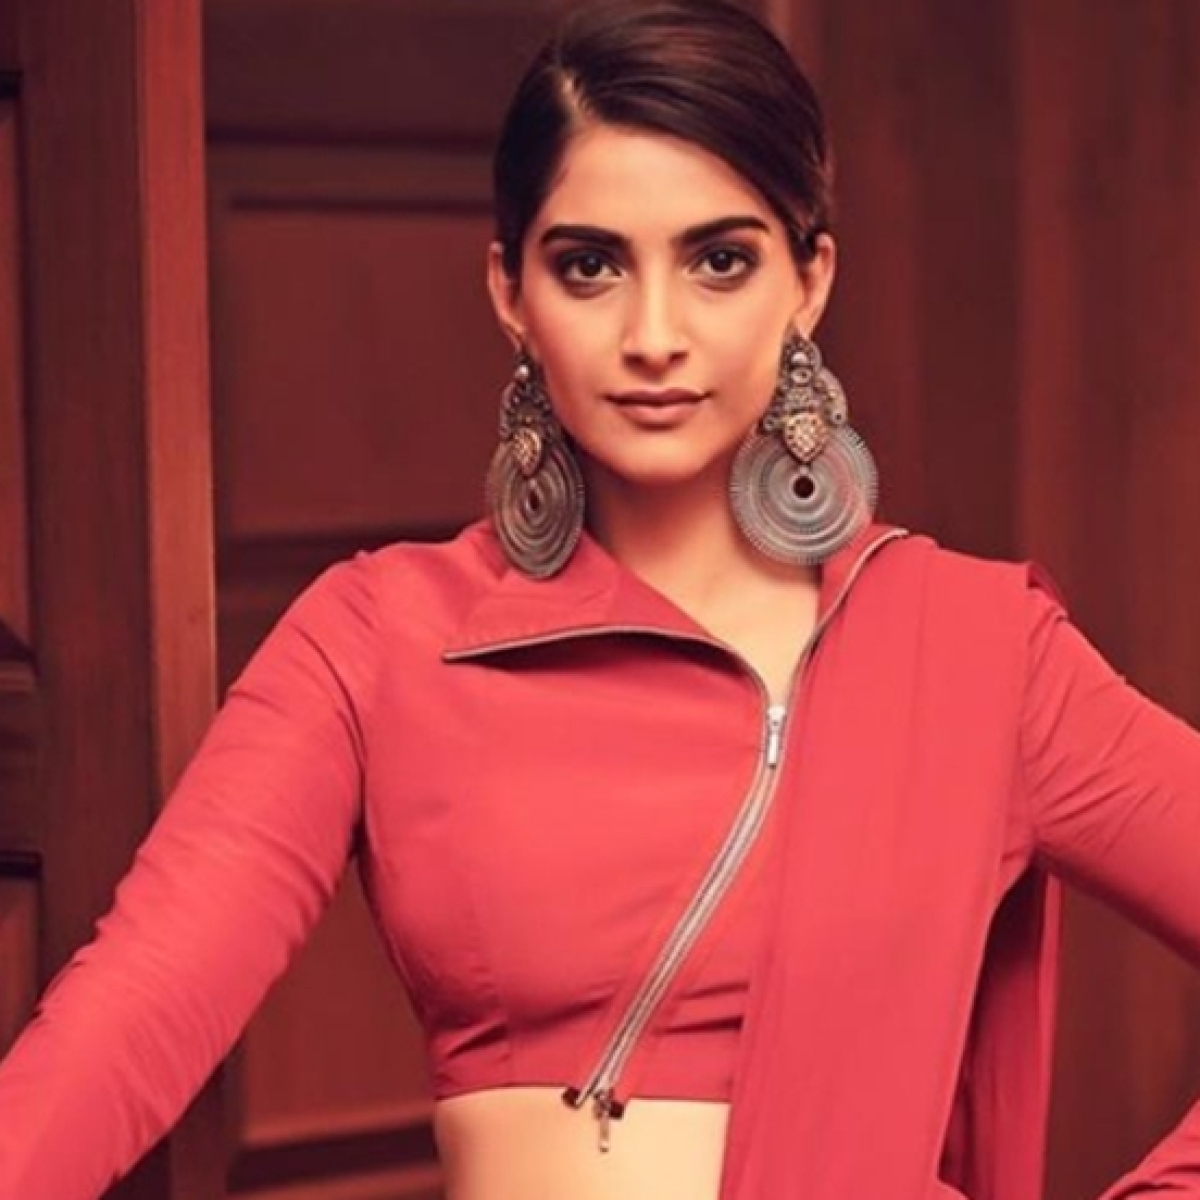 Sonam Kapoor Ahuja says her father Anil Kapoor never passes her number to anyone for work